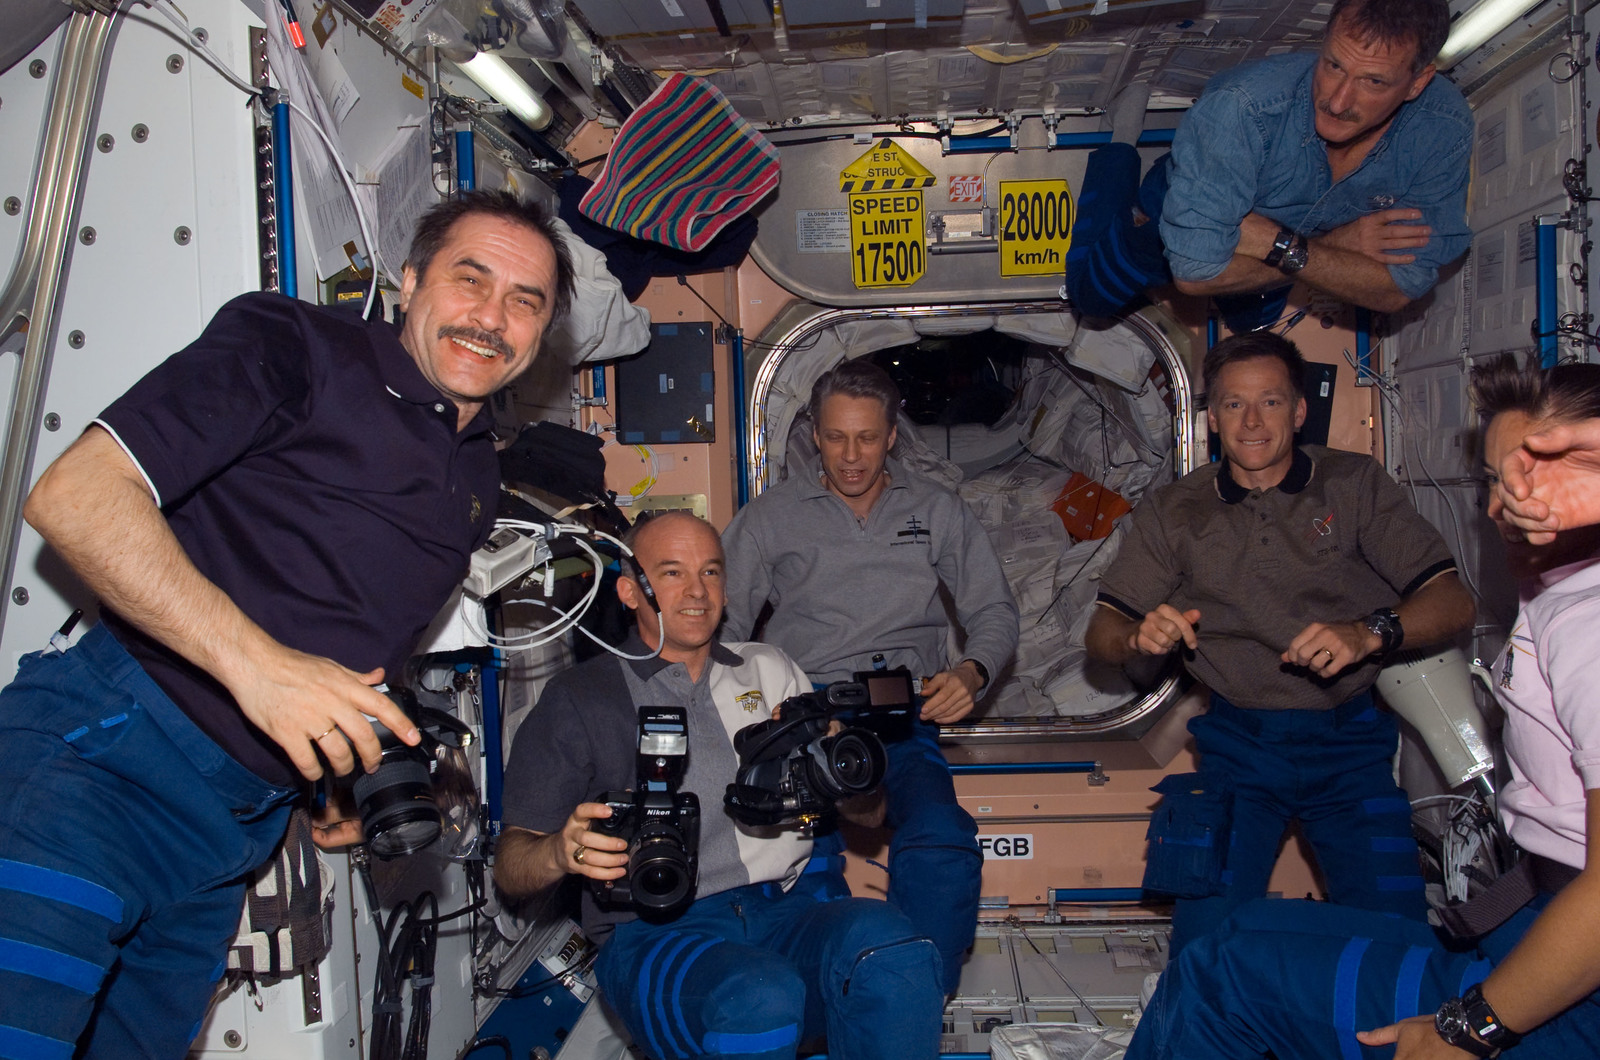 S115E06602 - STS-115 - STS-115 and Expedition 13 crewmembers in the Node 1 during Joint Operations